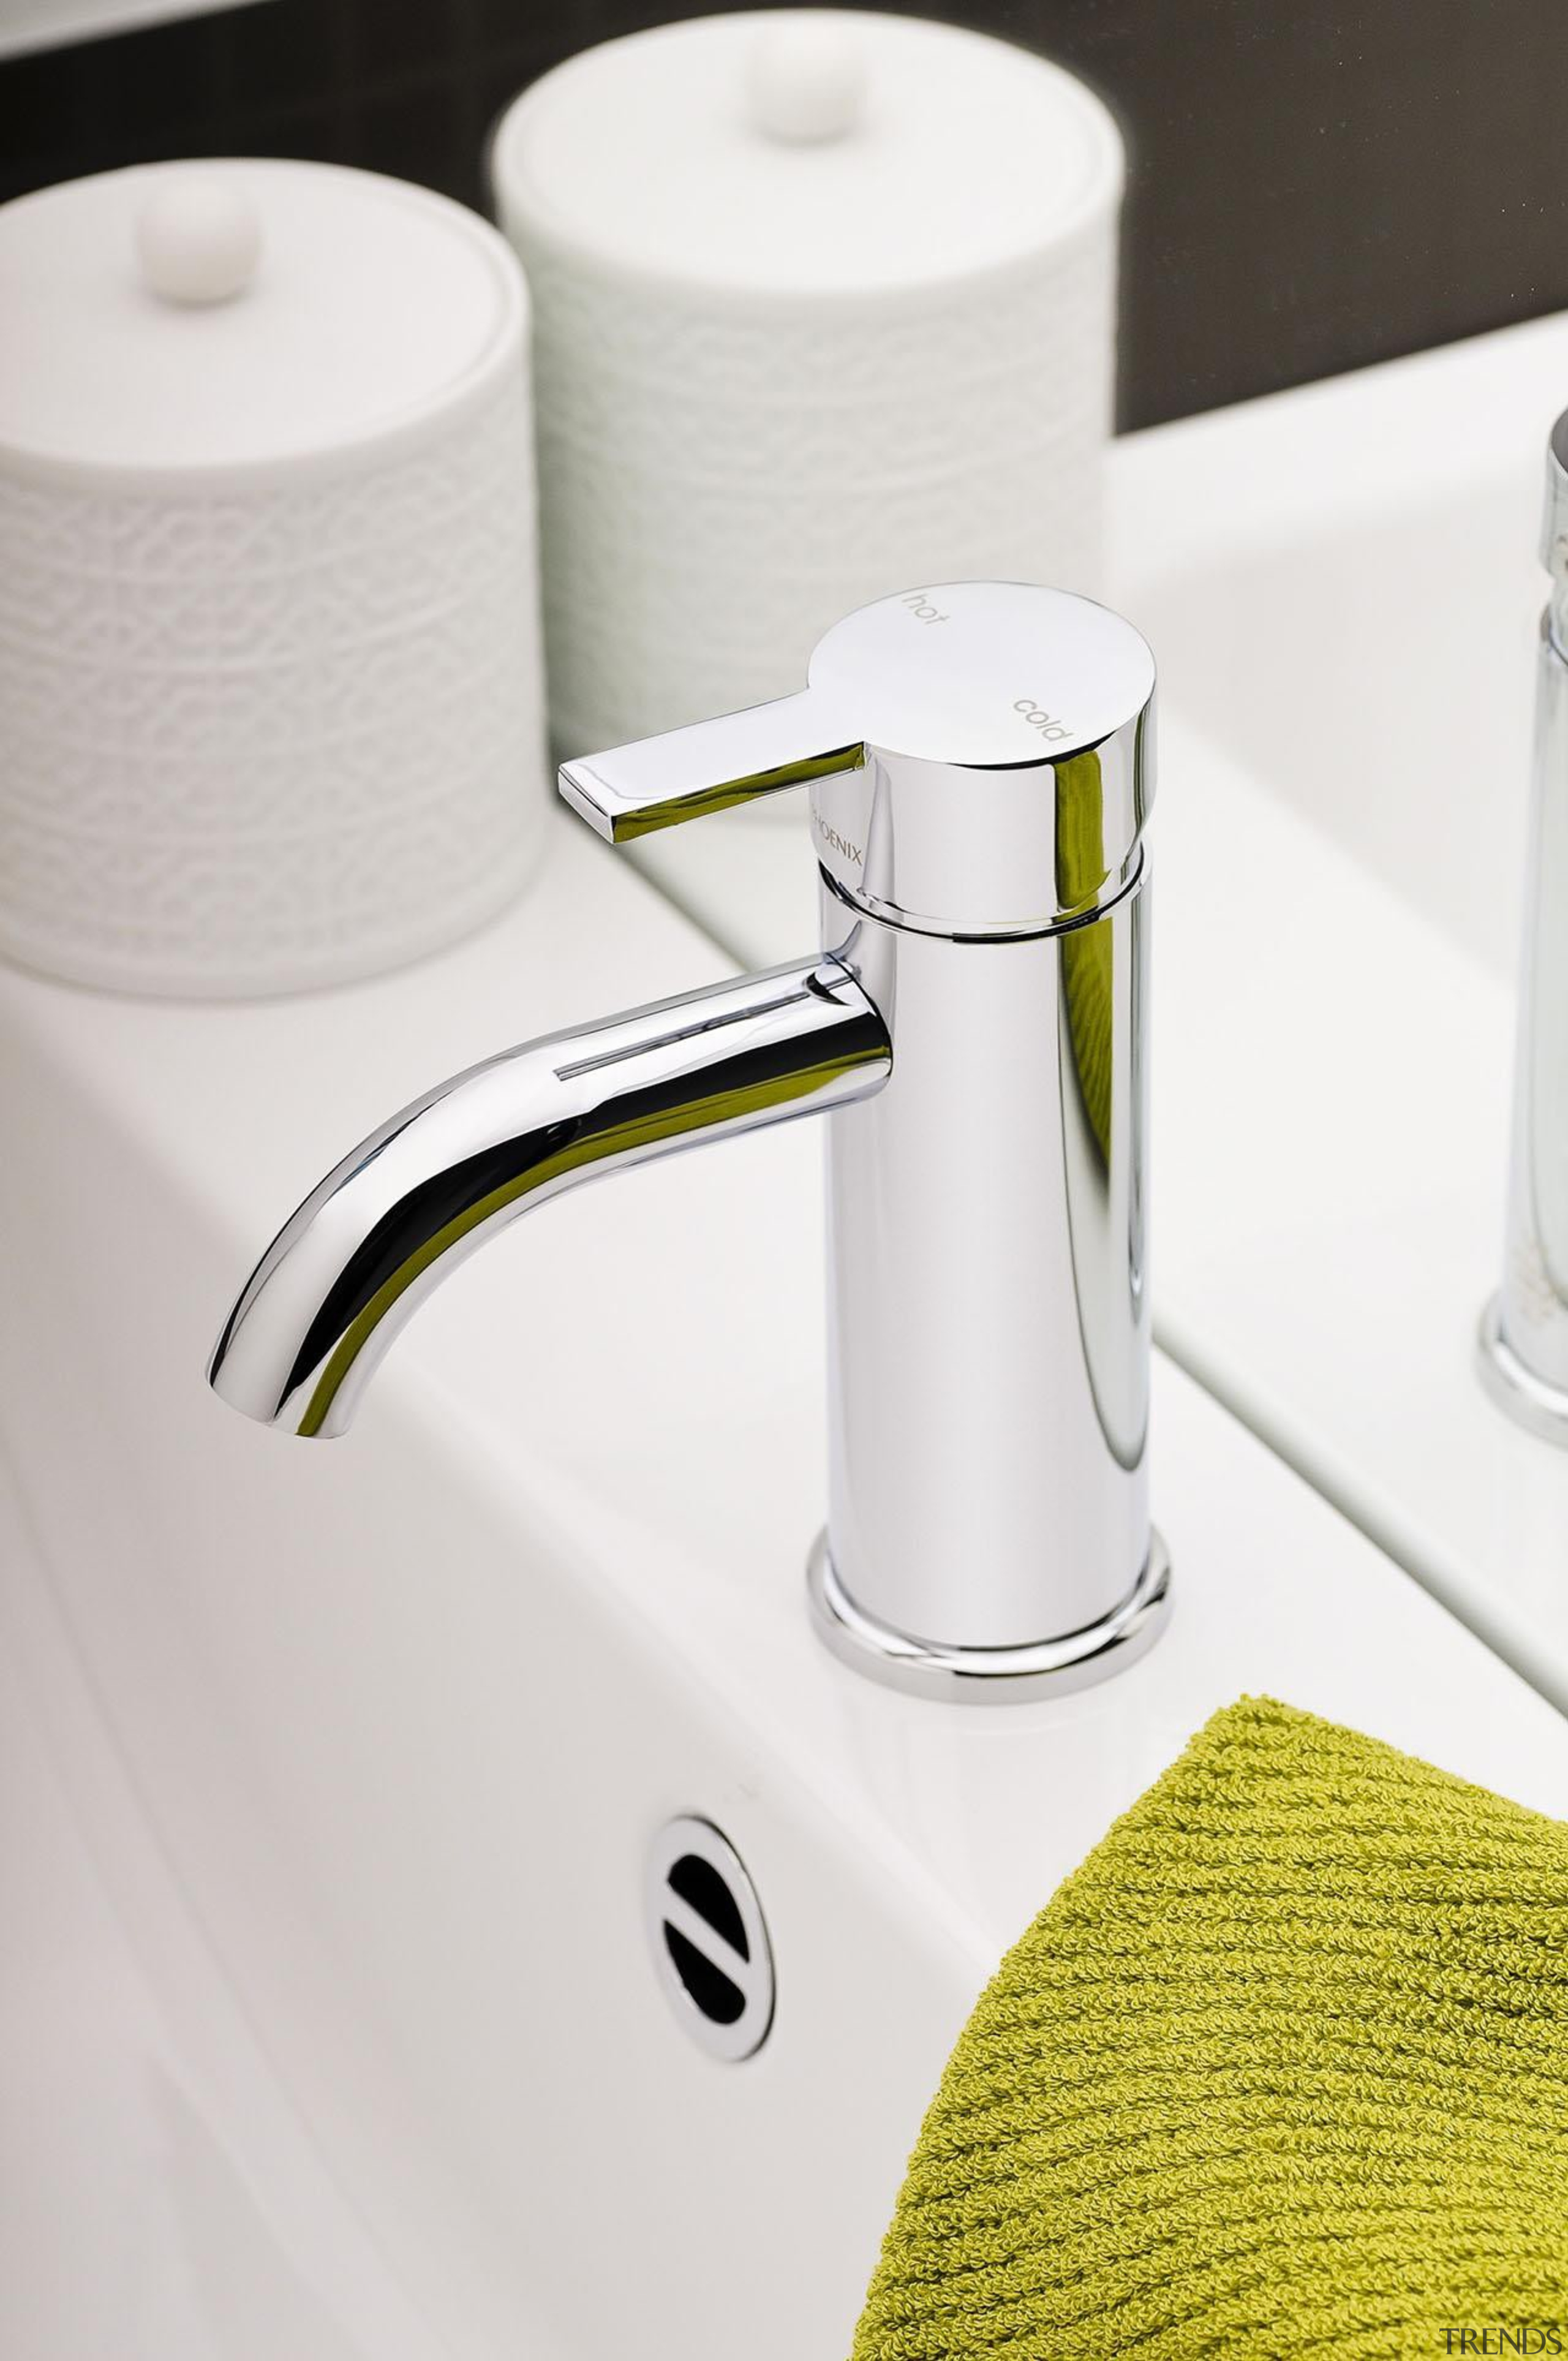 Lexi Basin Mixer is a statement tap in plumbing fixture, product, product design, tap, white